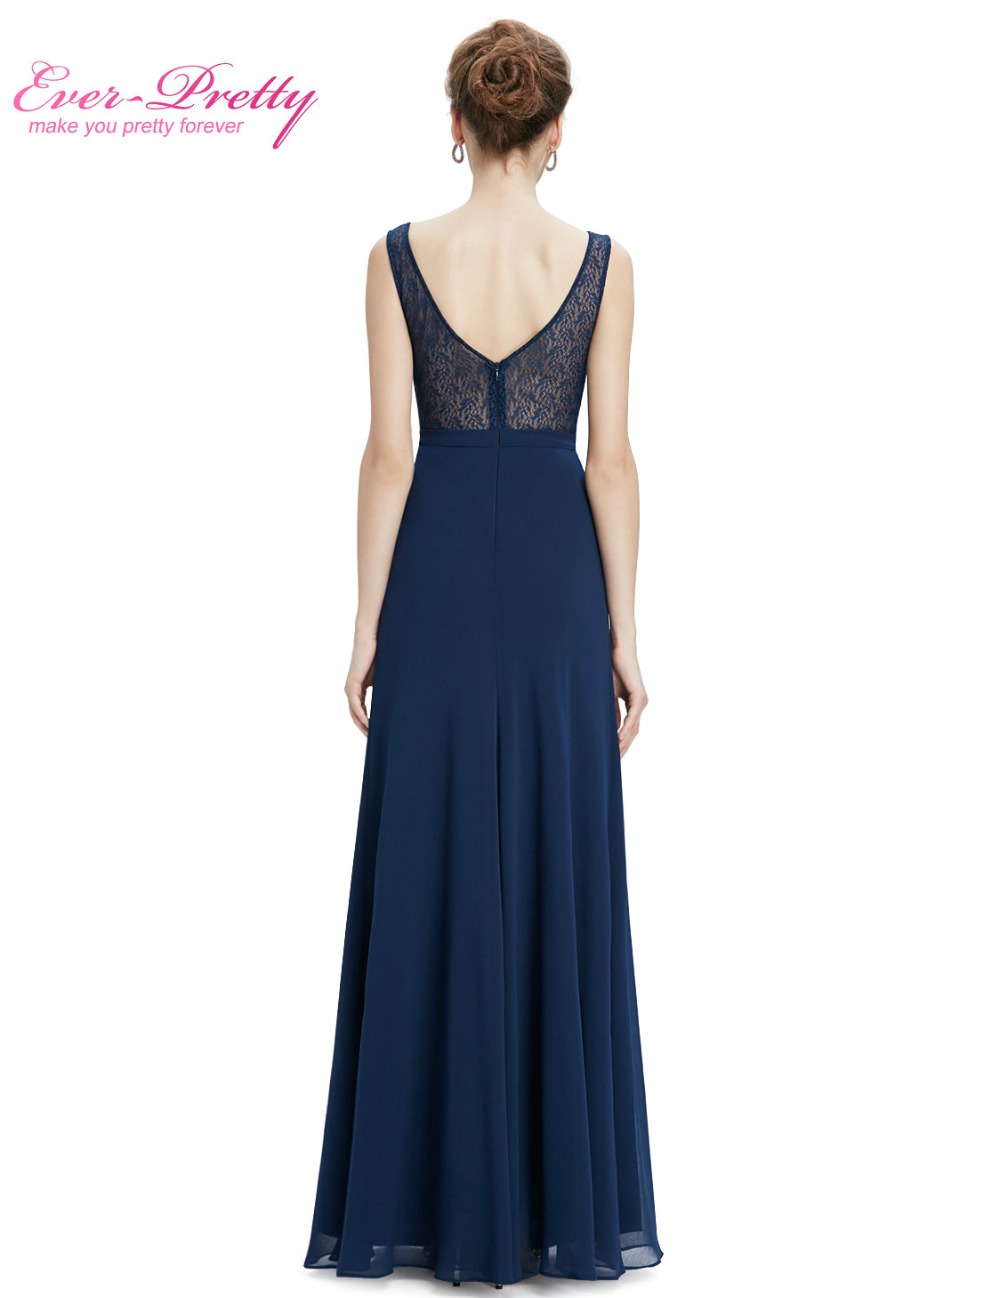 Mother of the Bride Dresses Ever Pretty HE08781NB Women s elegant round  neck long sleeveless Mother of the Bride Dresses-in Mother of the Bride  Dresses from ... ec56ae16ed80